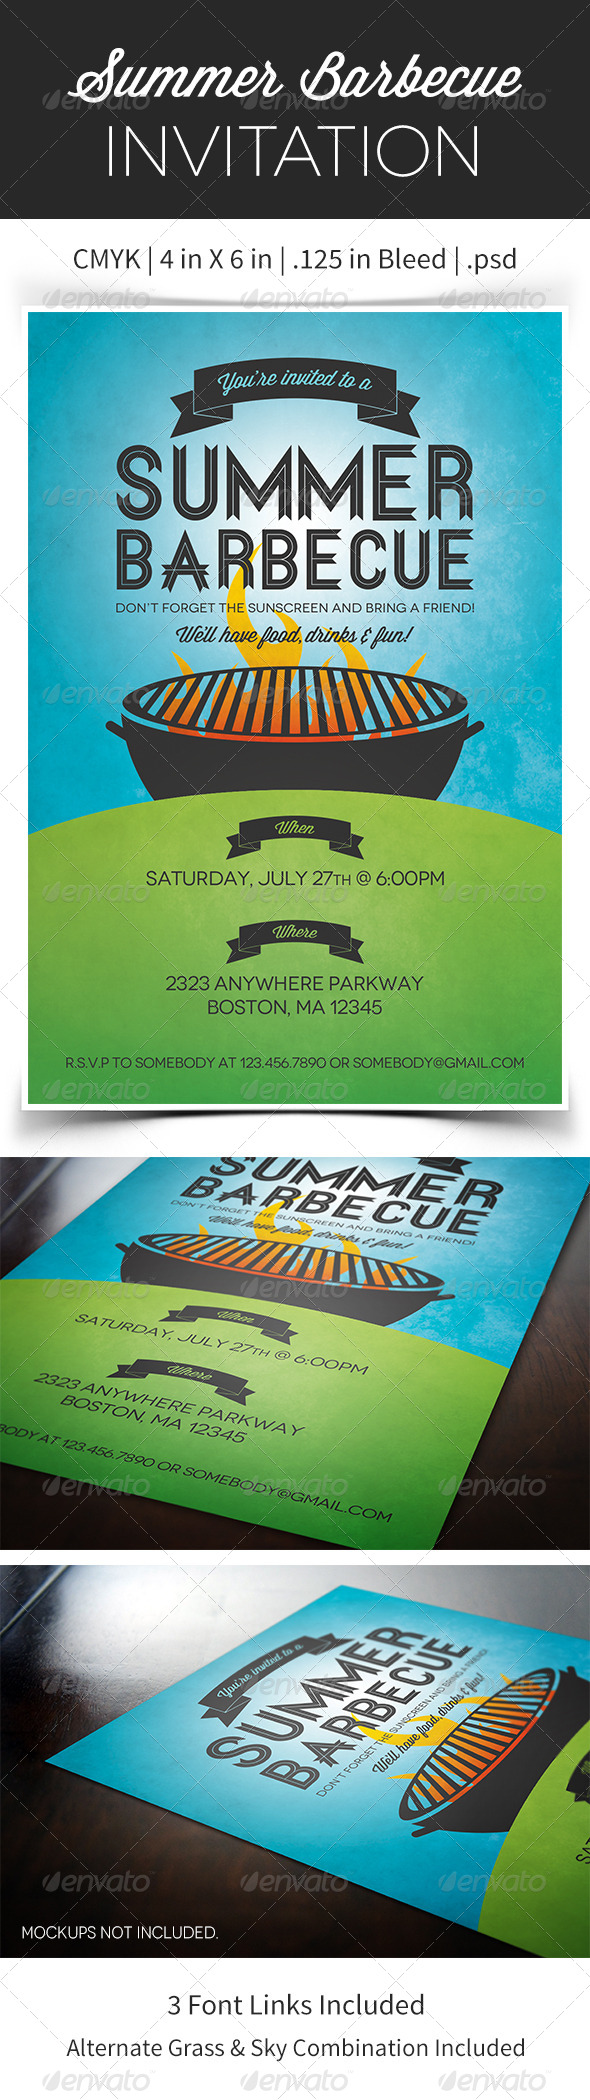 GraphicRiver Summer Barbecue Invitation Flyer 4974355